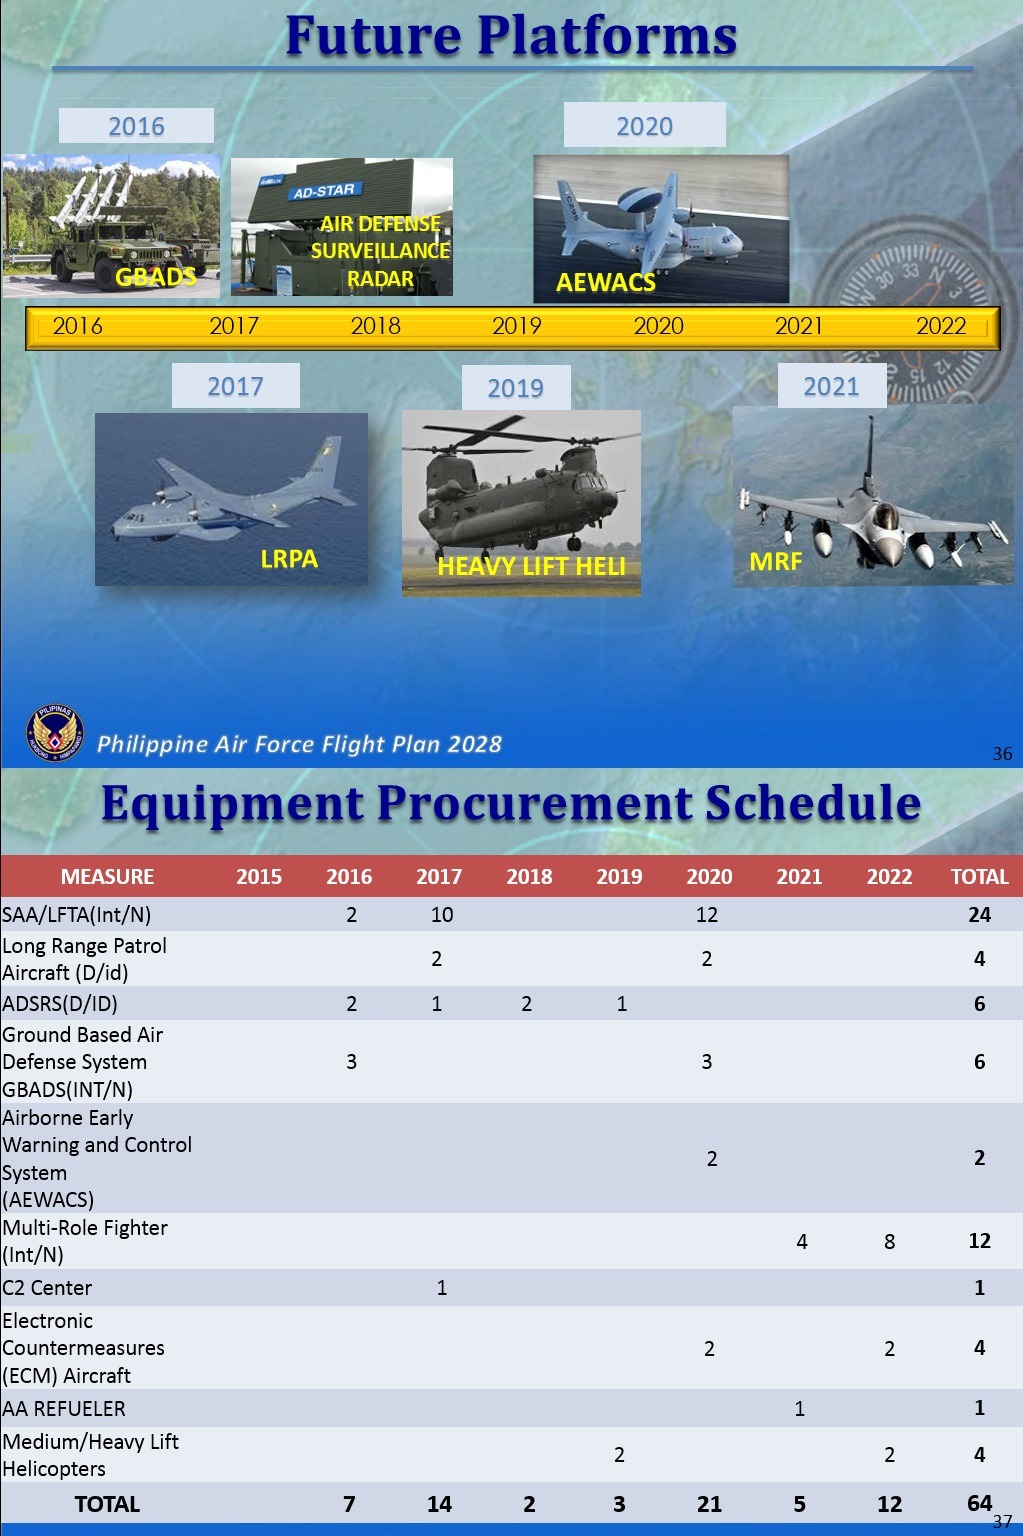 PhAF 2028 - Planned Purchases